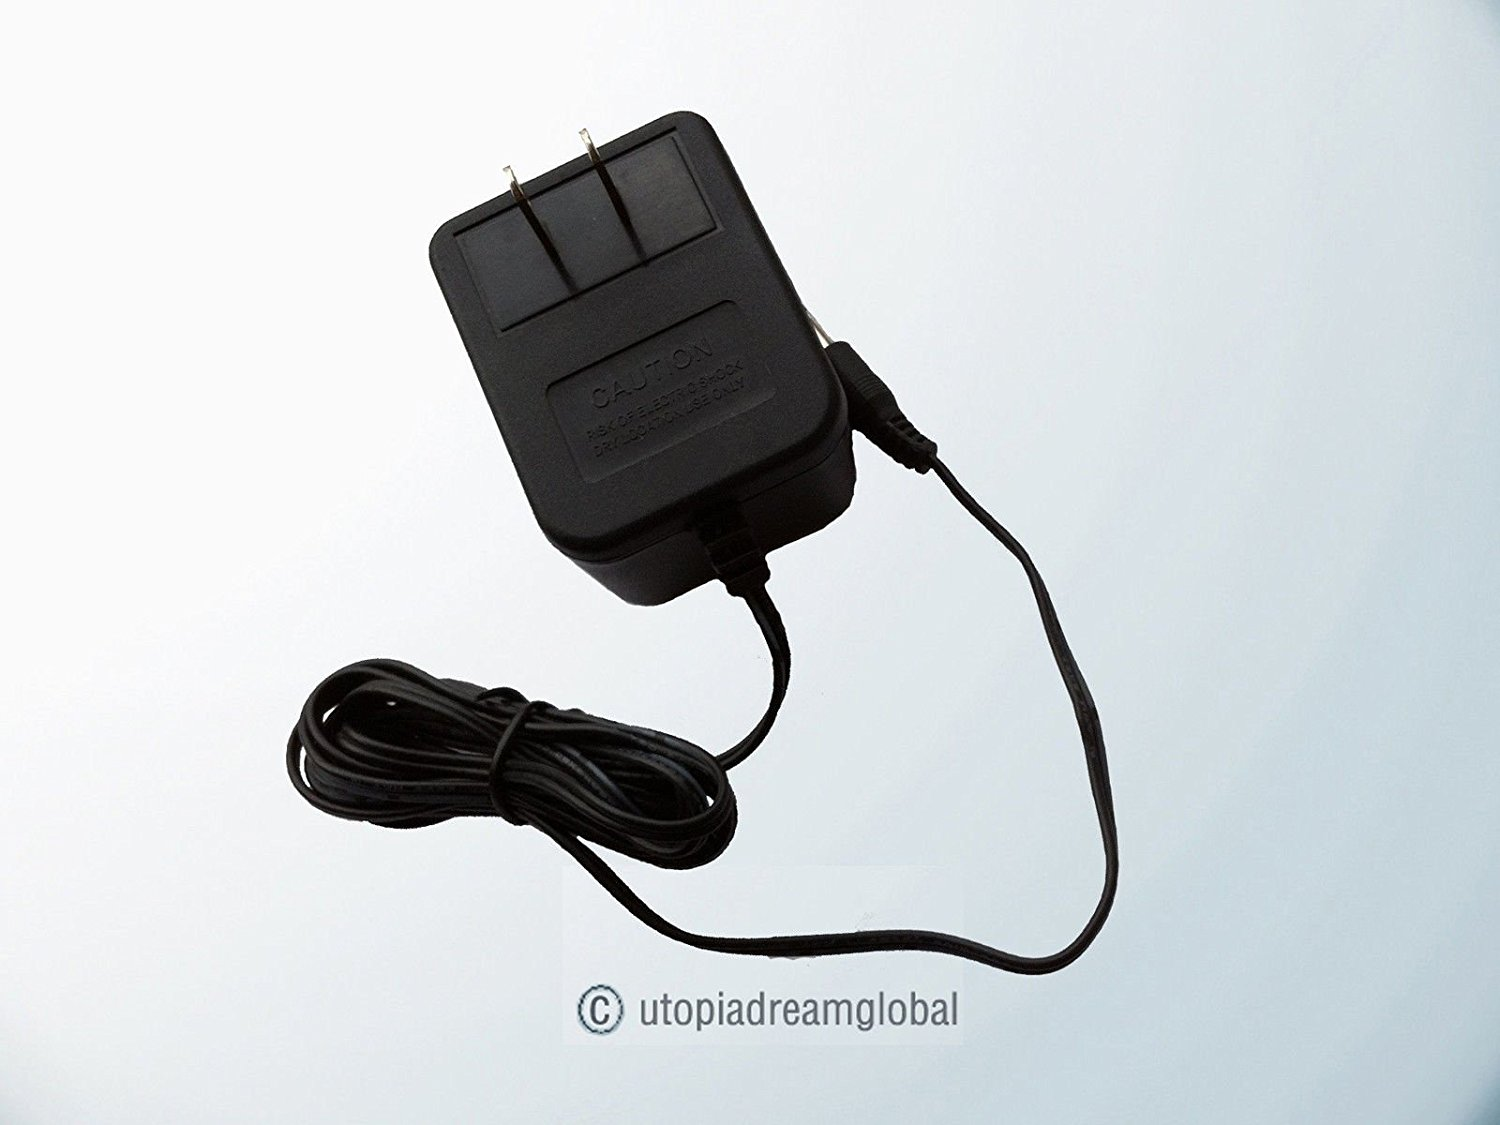 Nikon MH-63 MH63 Charger for EN-EL10 ENEL10 Battery for Select Coolpix Cameras